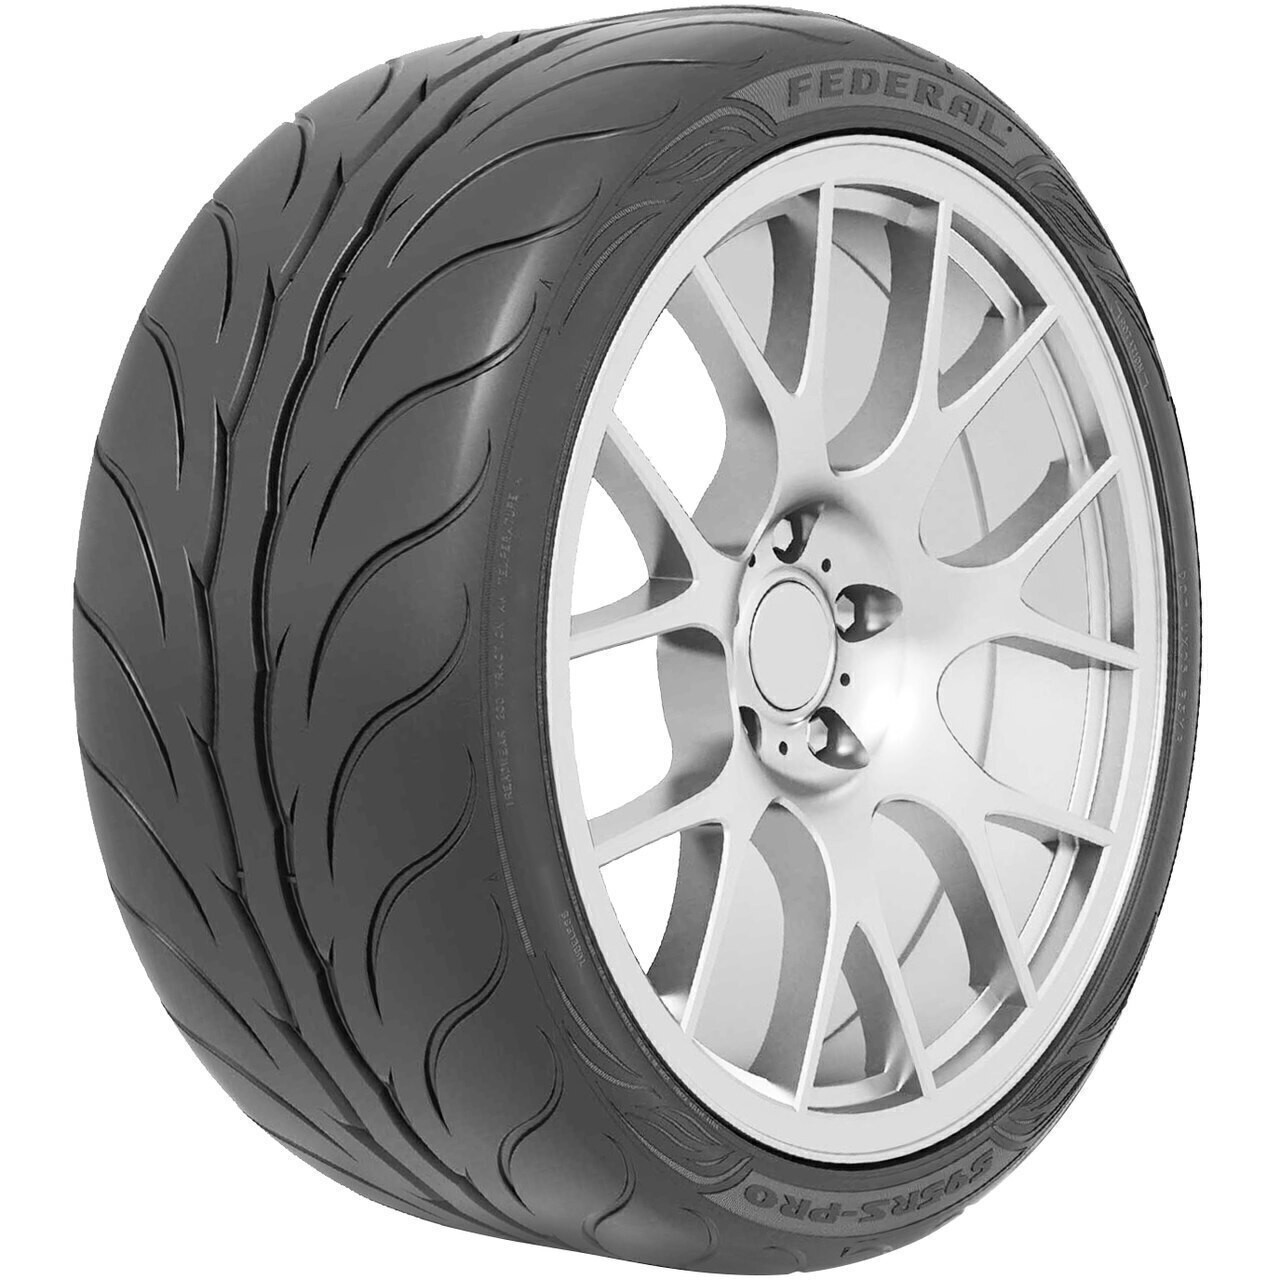 265/40ZR18 FEDERAL 595RS-PRO 101Y XL 200AAA***RACING TIRE***